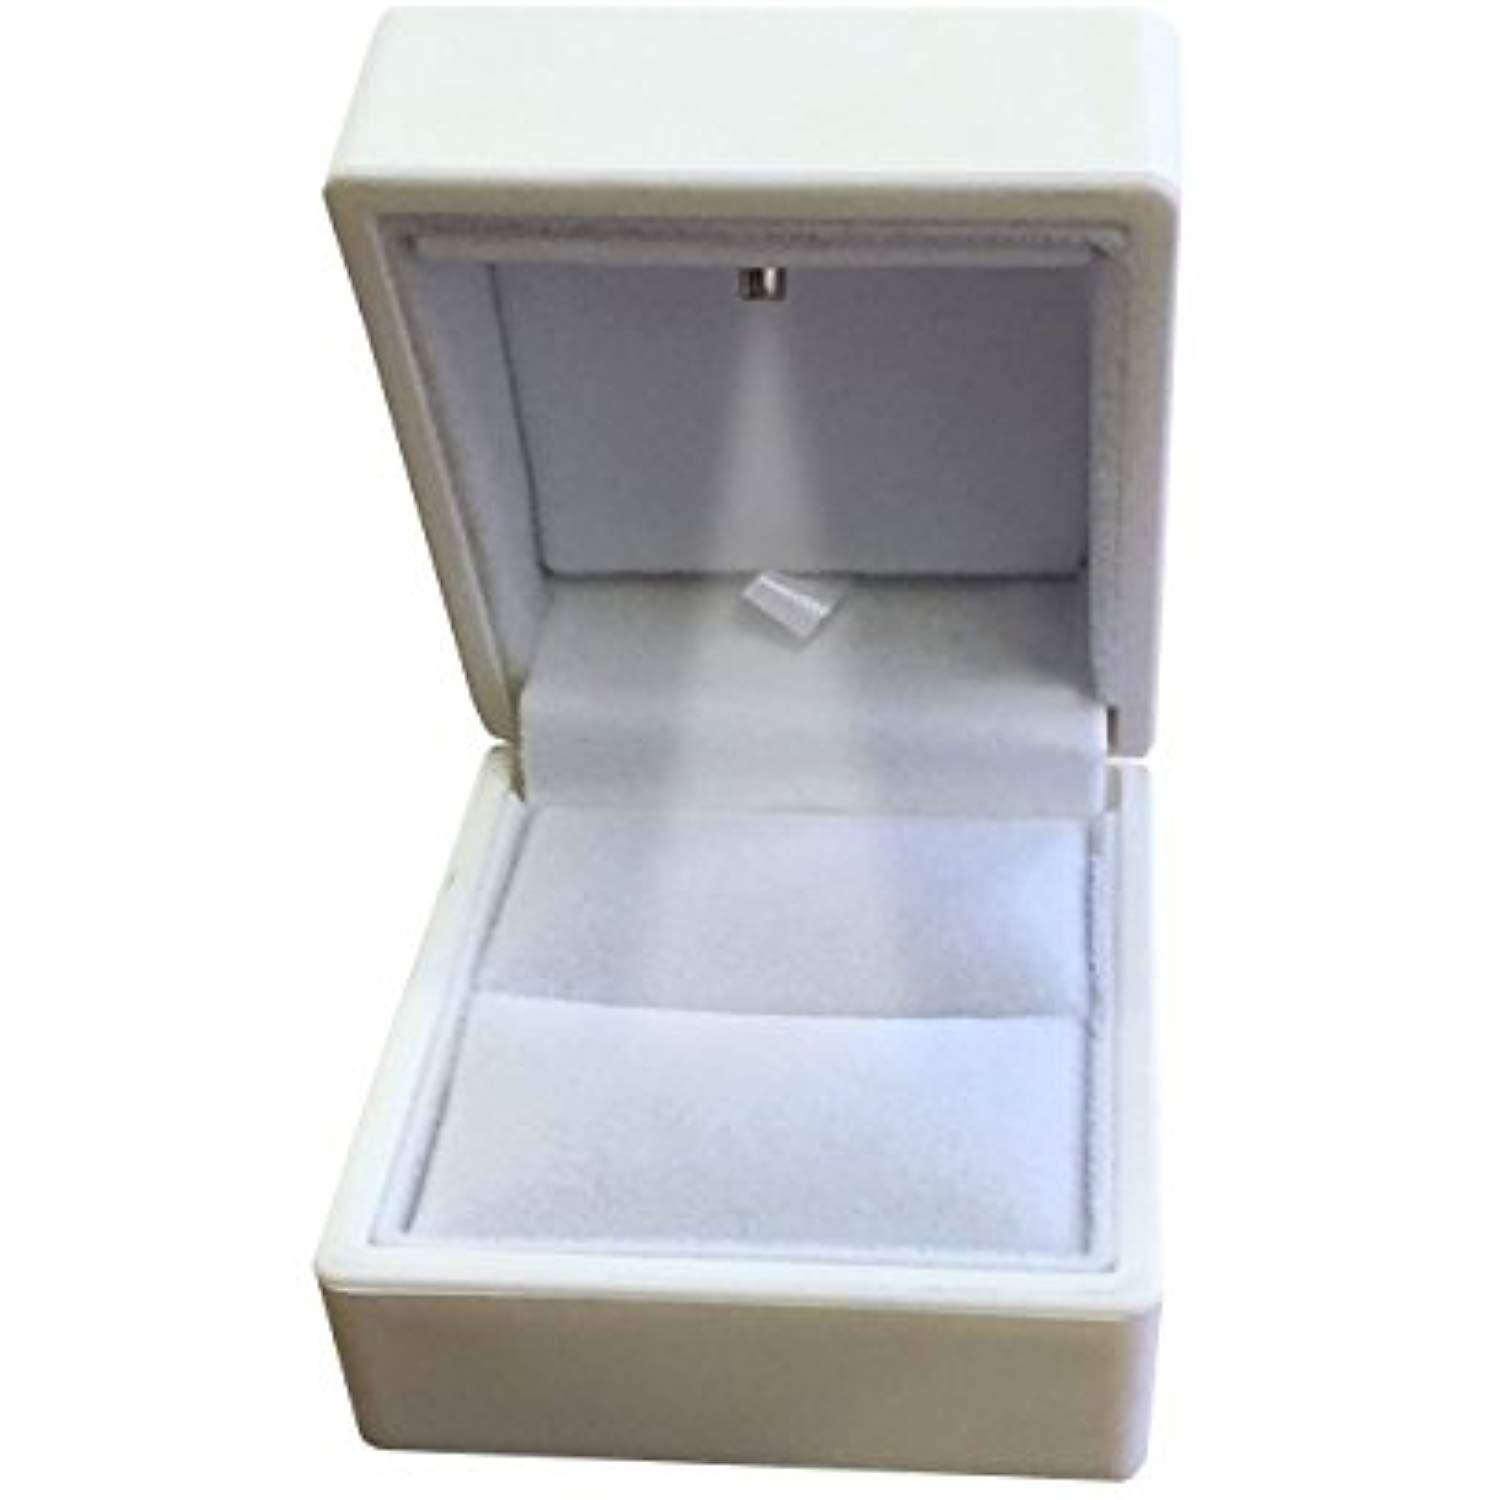 Noble White Light Led Single Ring Jewelry Box Deluxe For Engagement Proposal Or Special Occasions Jewelry Ring Box Proposal Engagement Storage Organization